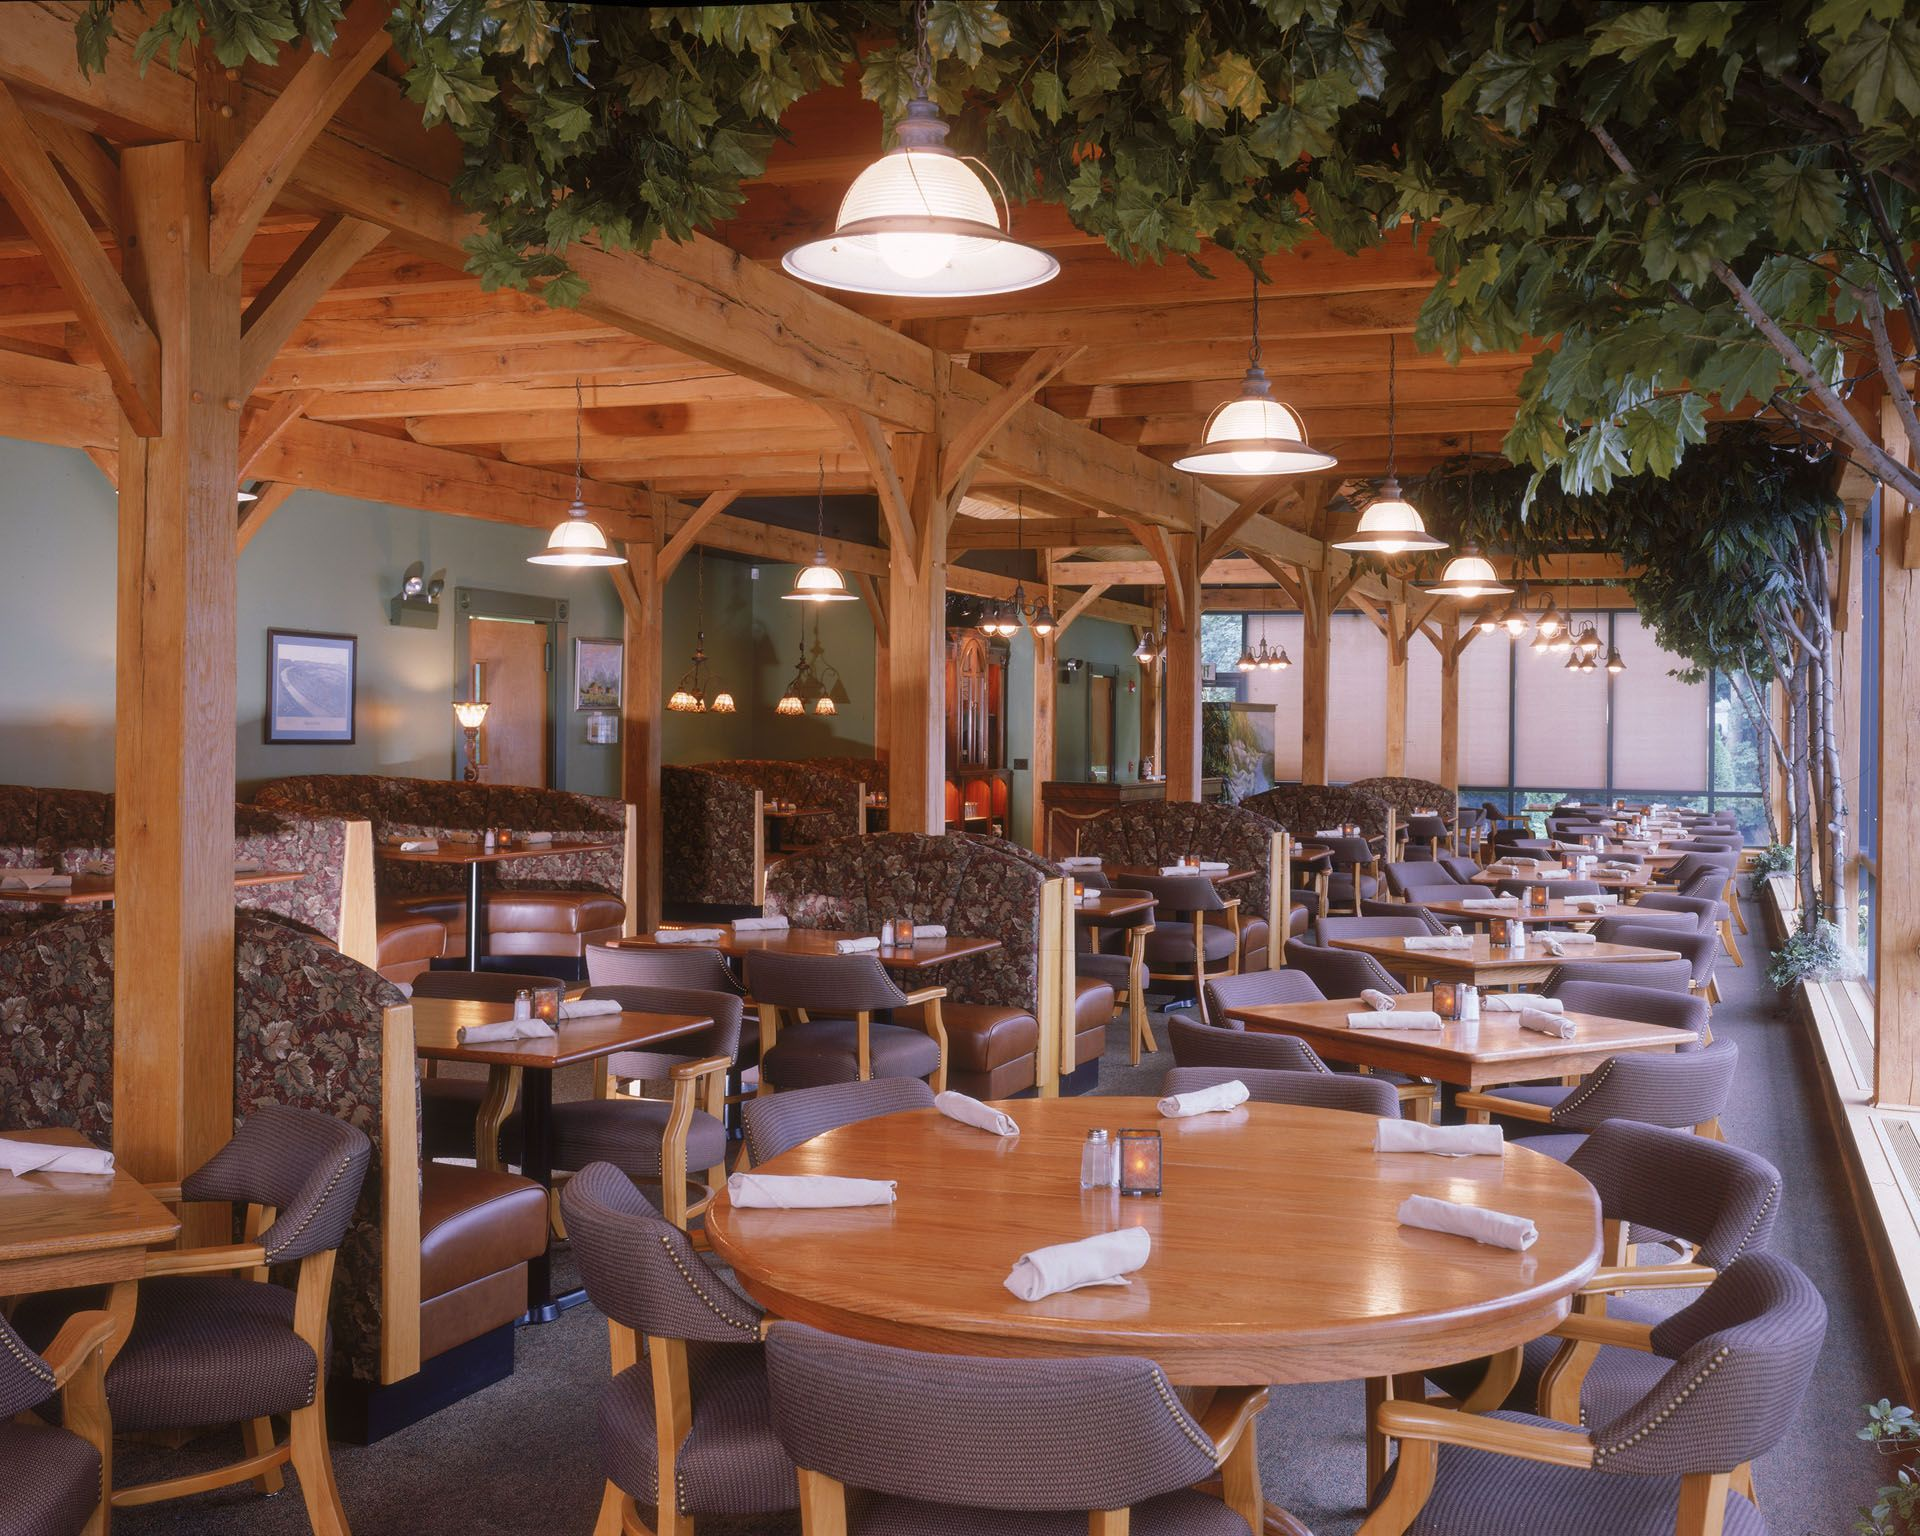 The Allegheny Grille in Foxburg, Pennsylvania is a